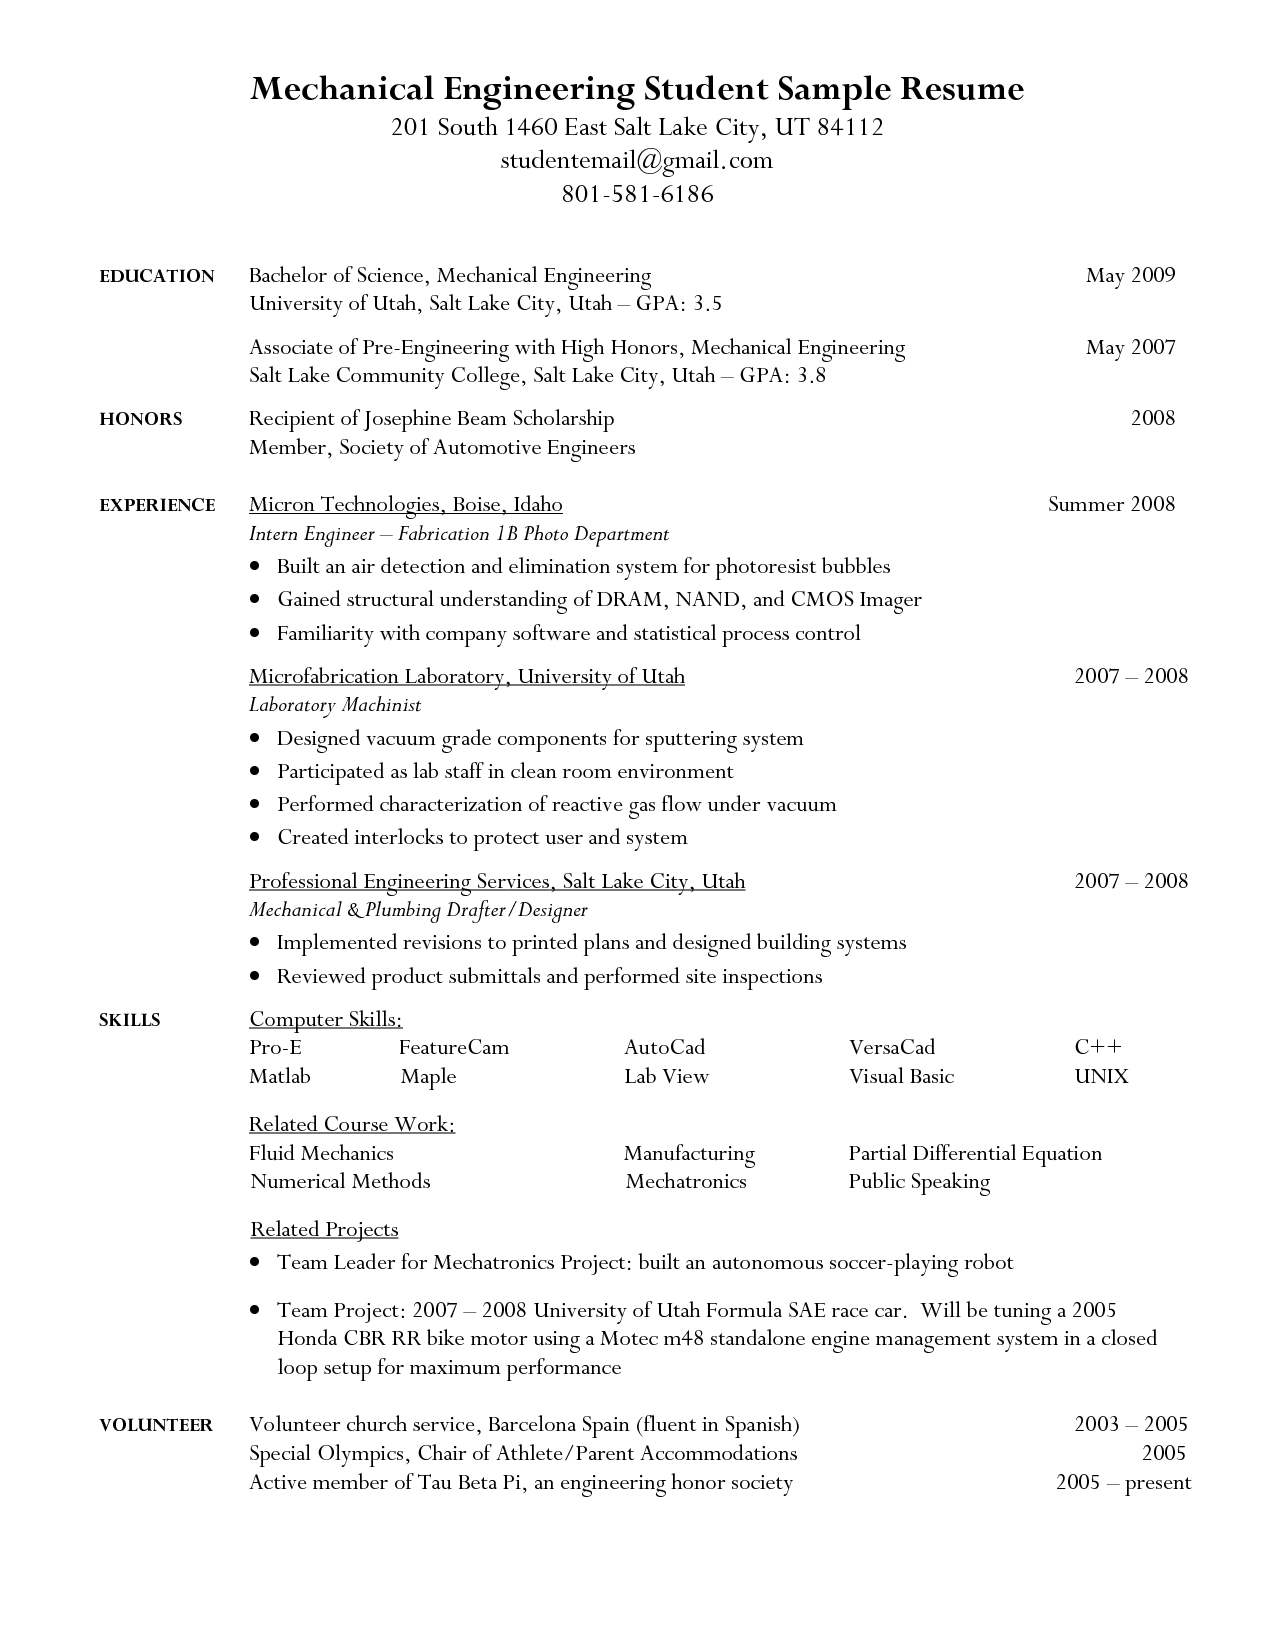 Free Sample Resumes Engineering Student Resume Google Search Resumes